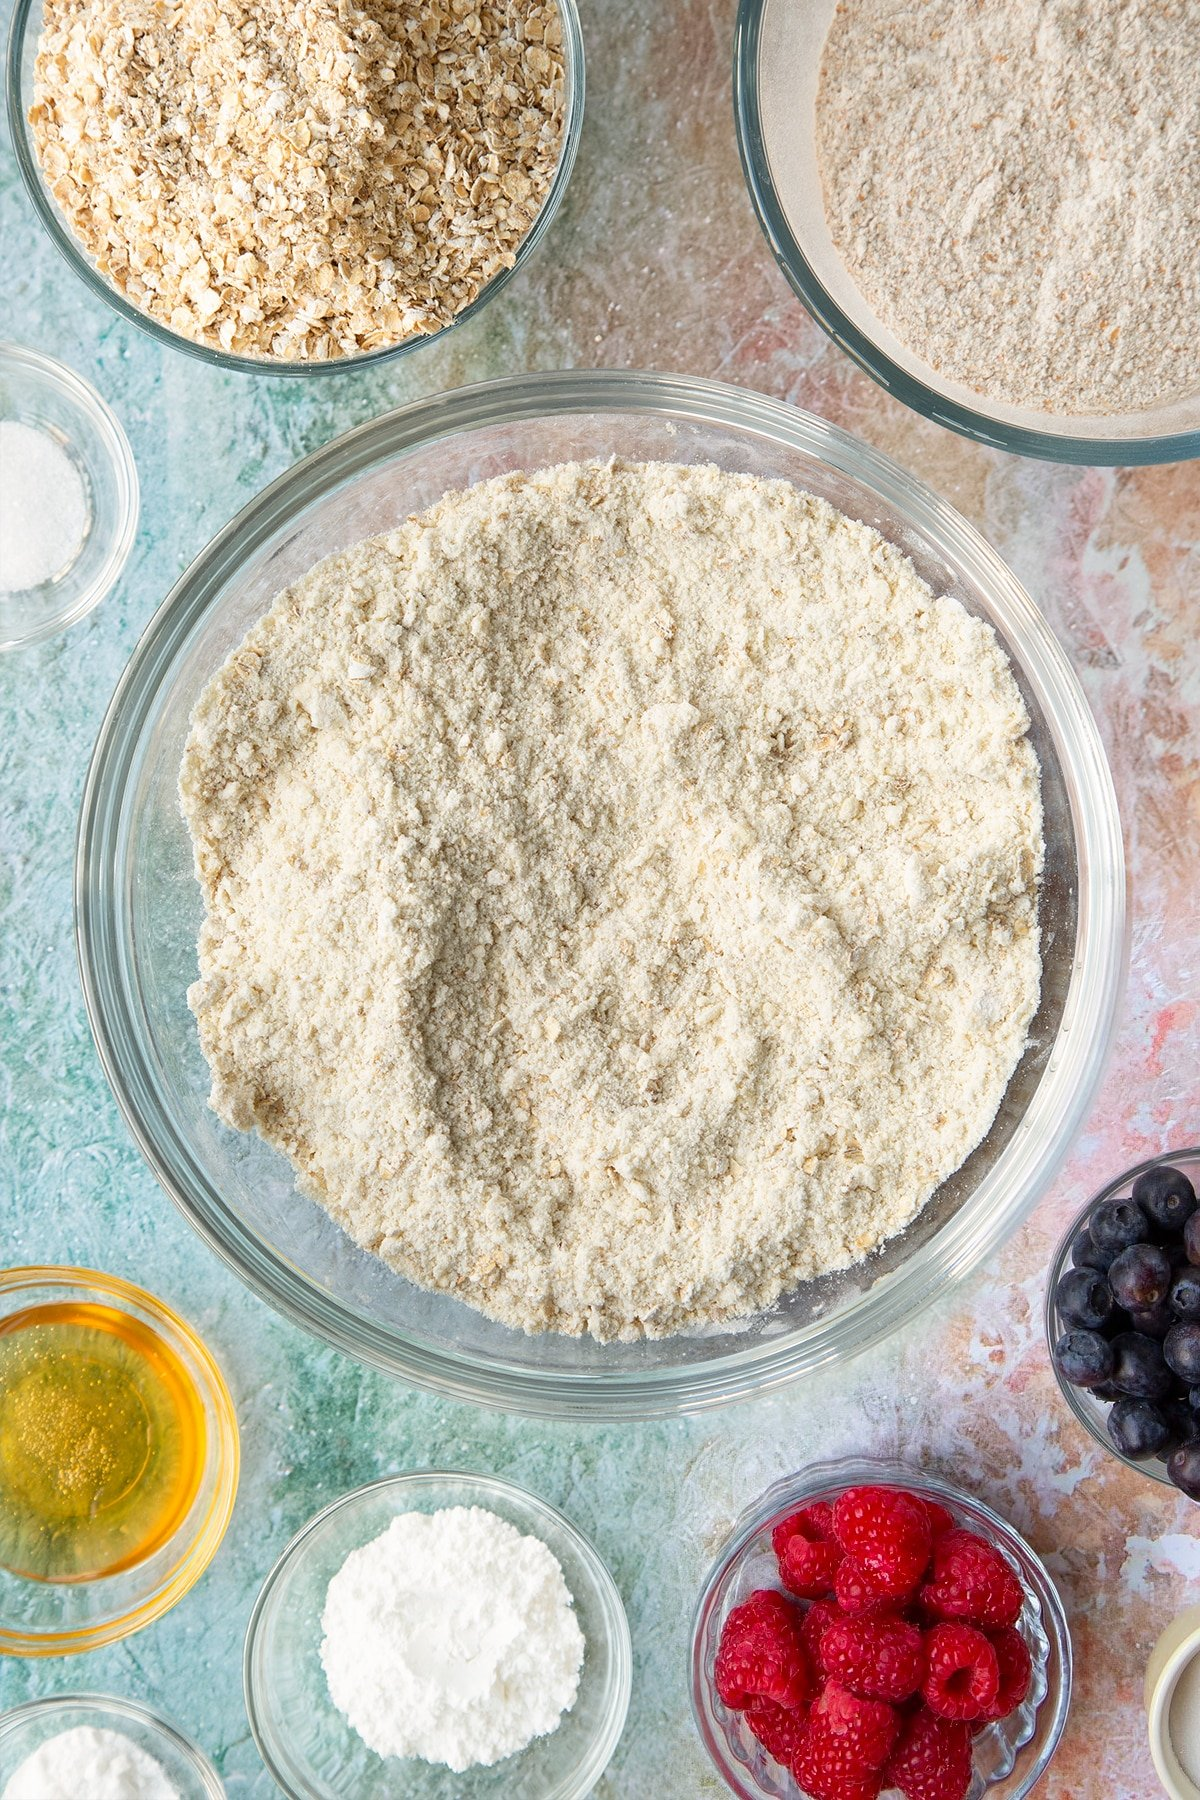 Butter rubbed into self-raising flour, bicarbonate of soda, sugar and oats in a glass mixing bowl. Ingredients to make oatmeal scones surround the bowl.